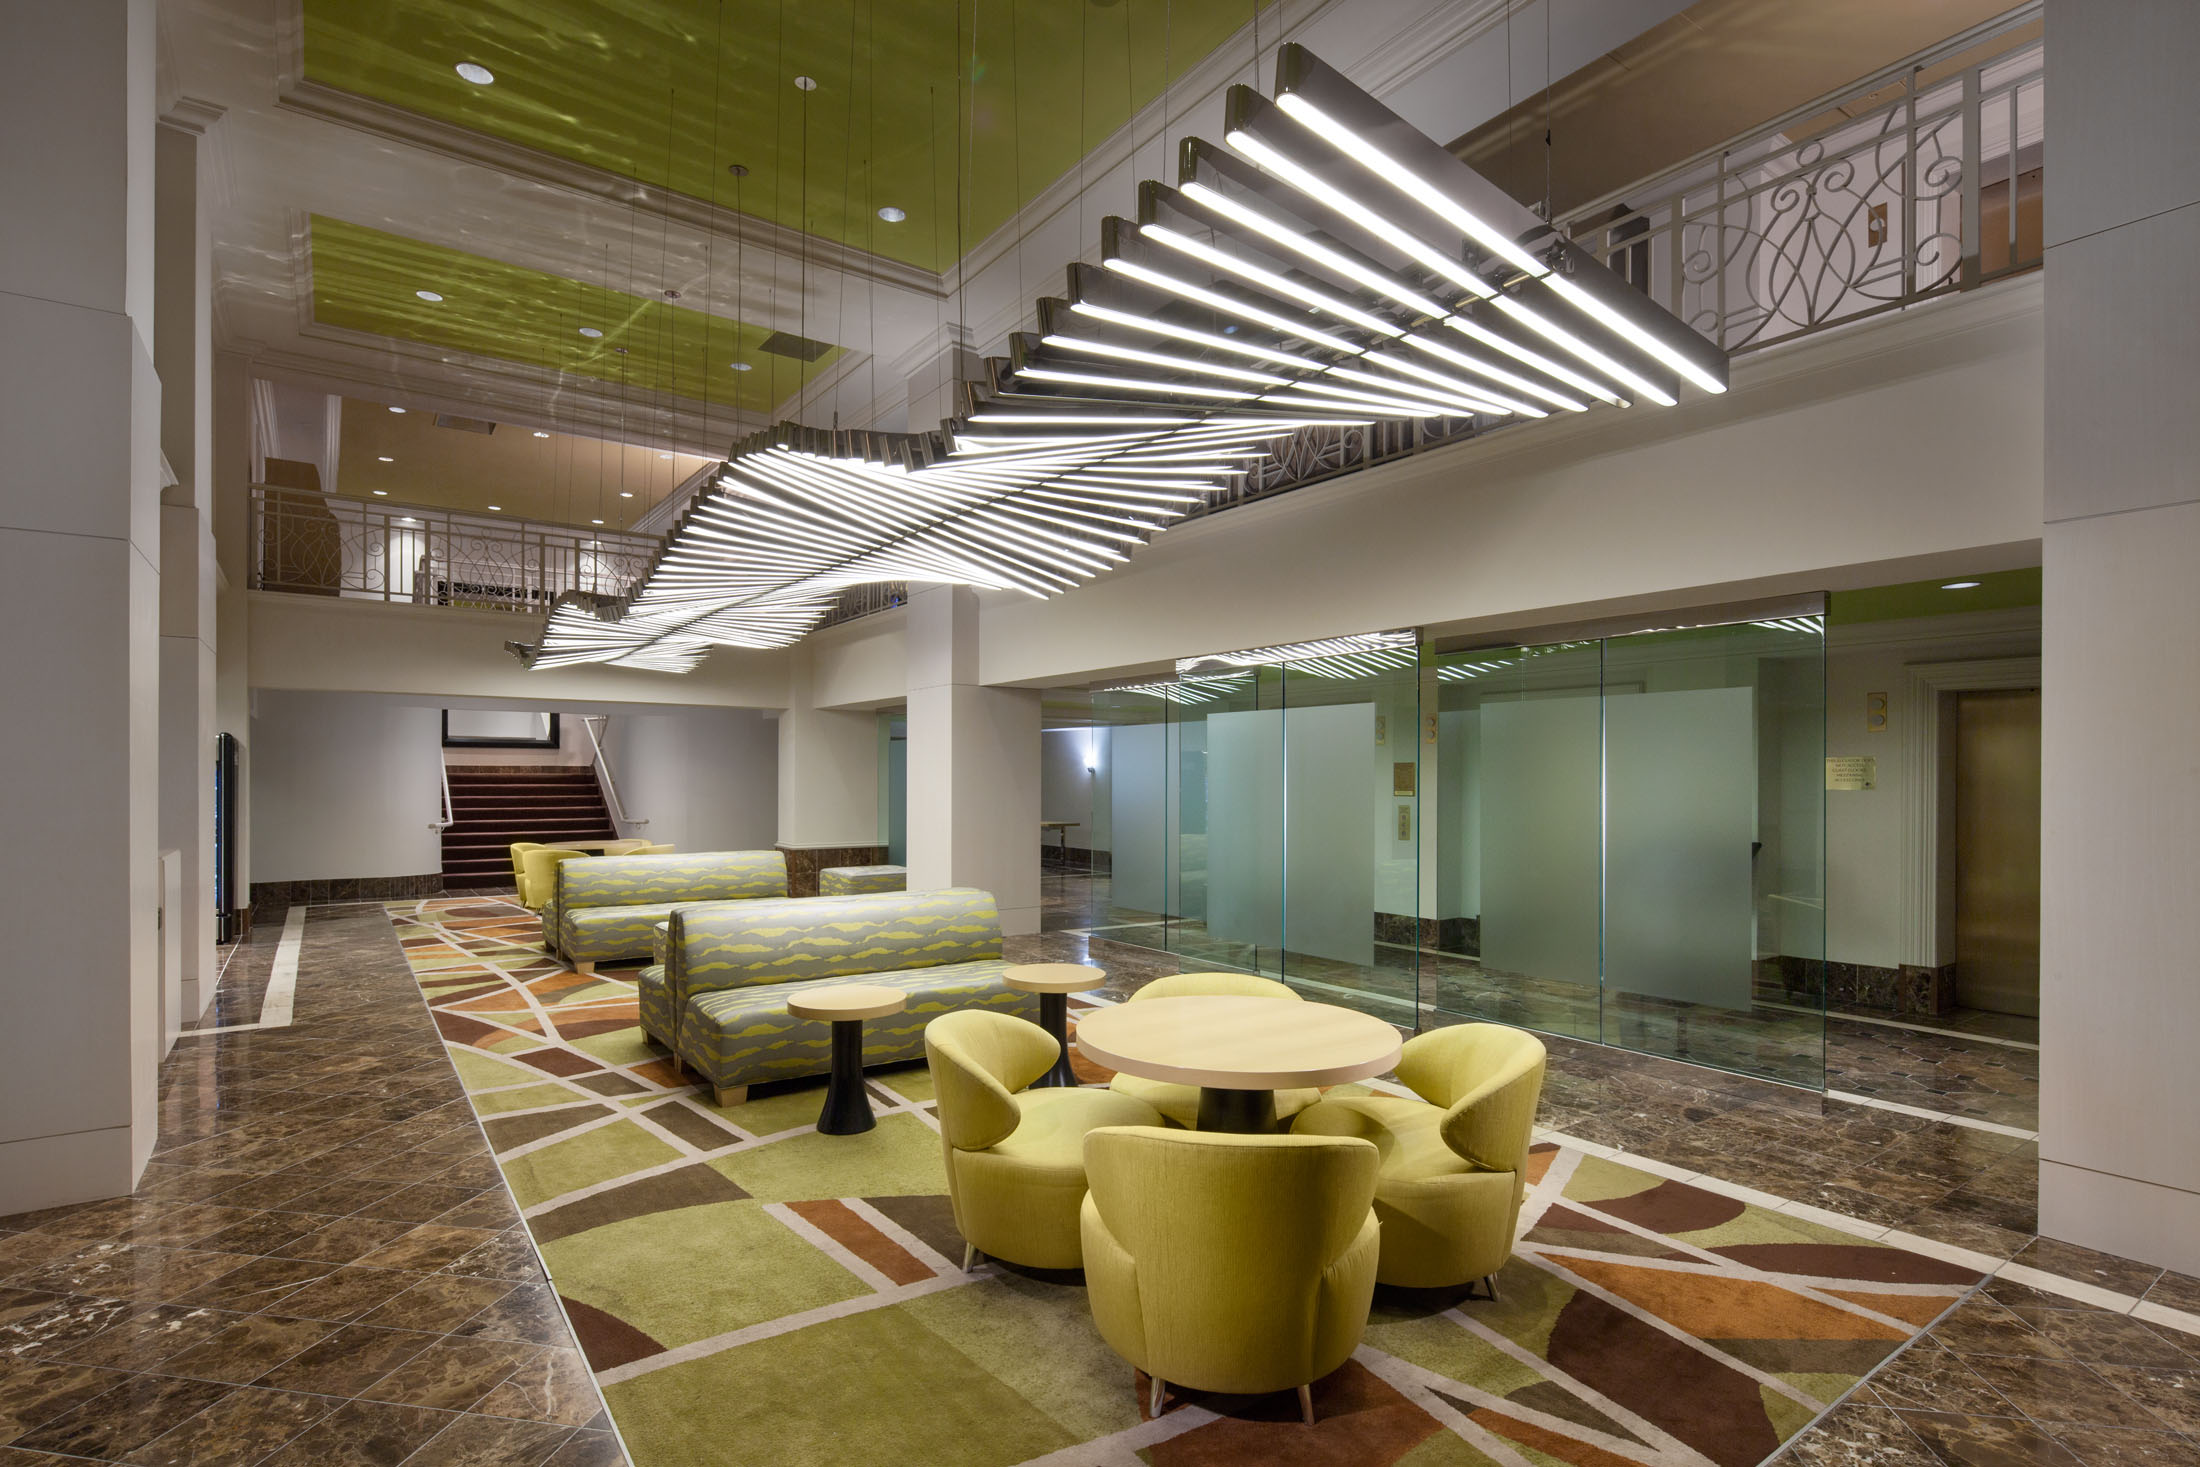 Doubletree by Hilton  Atlanta GA   View Full Project